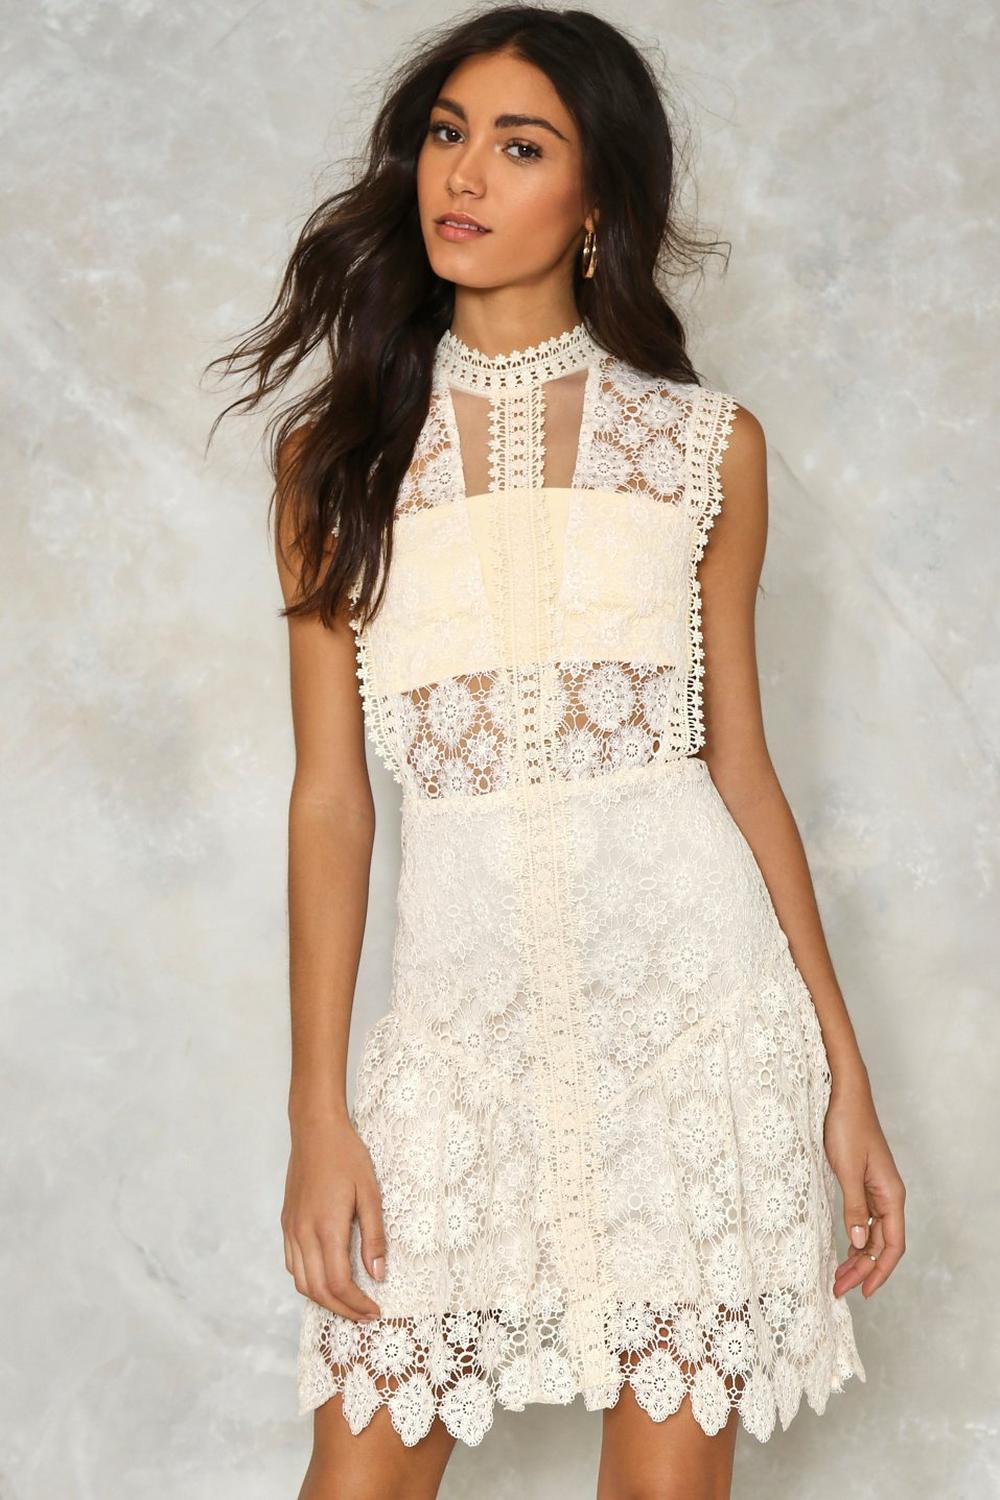 Crochet Lace dress – Fashion with crochet lace